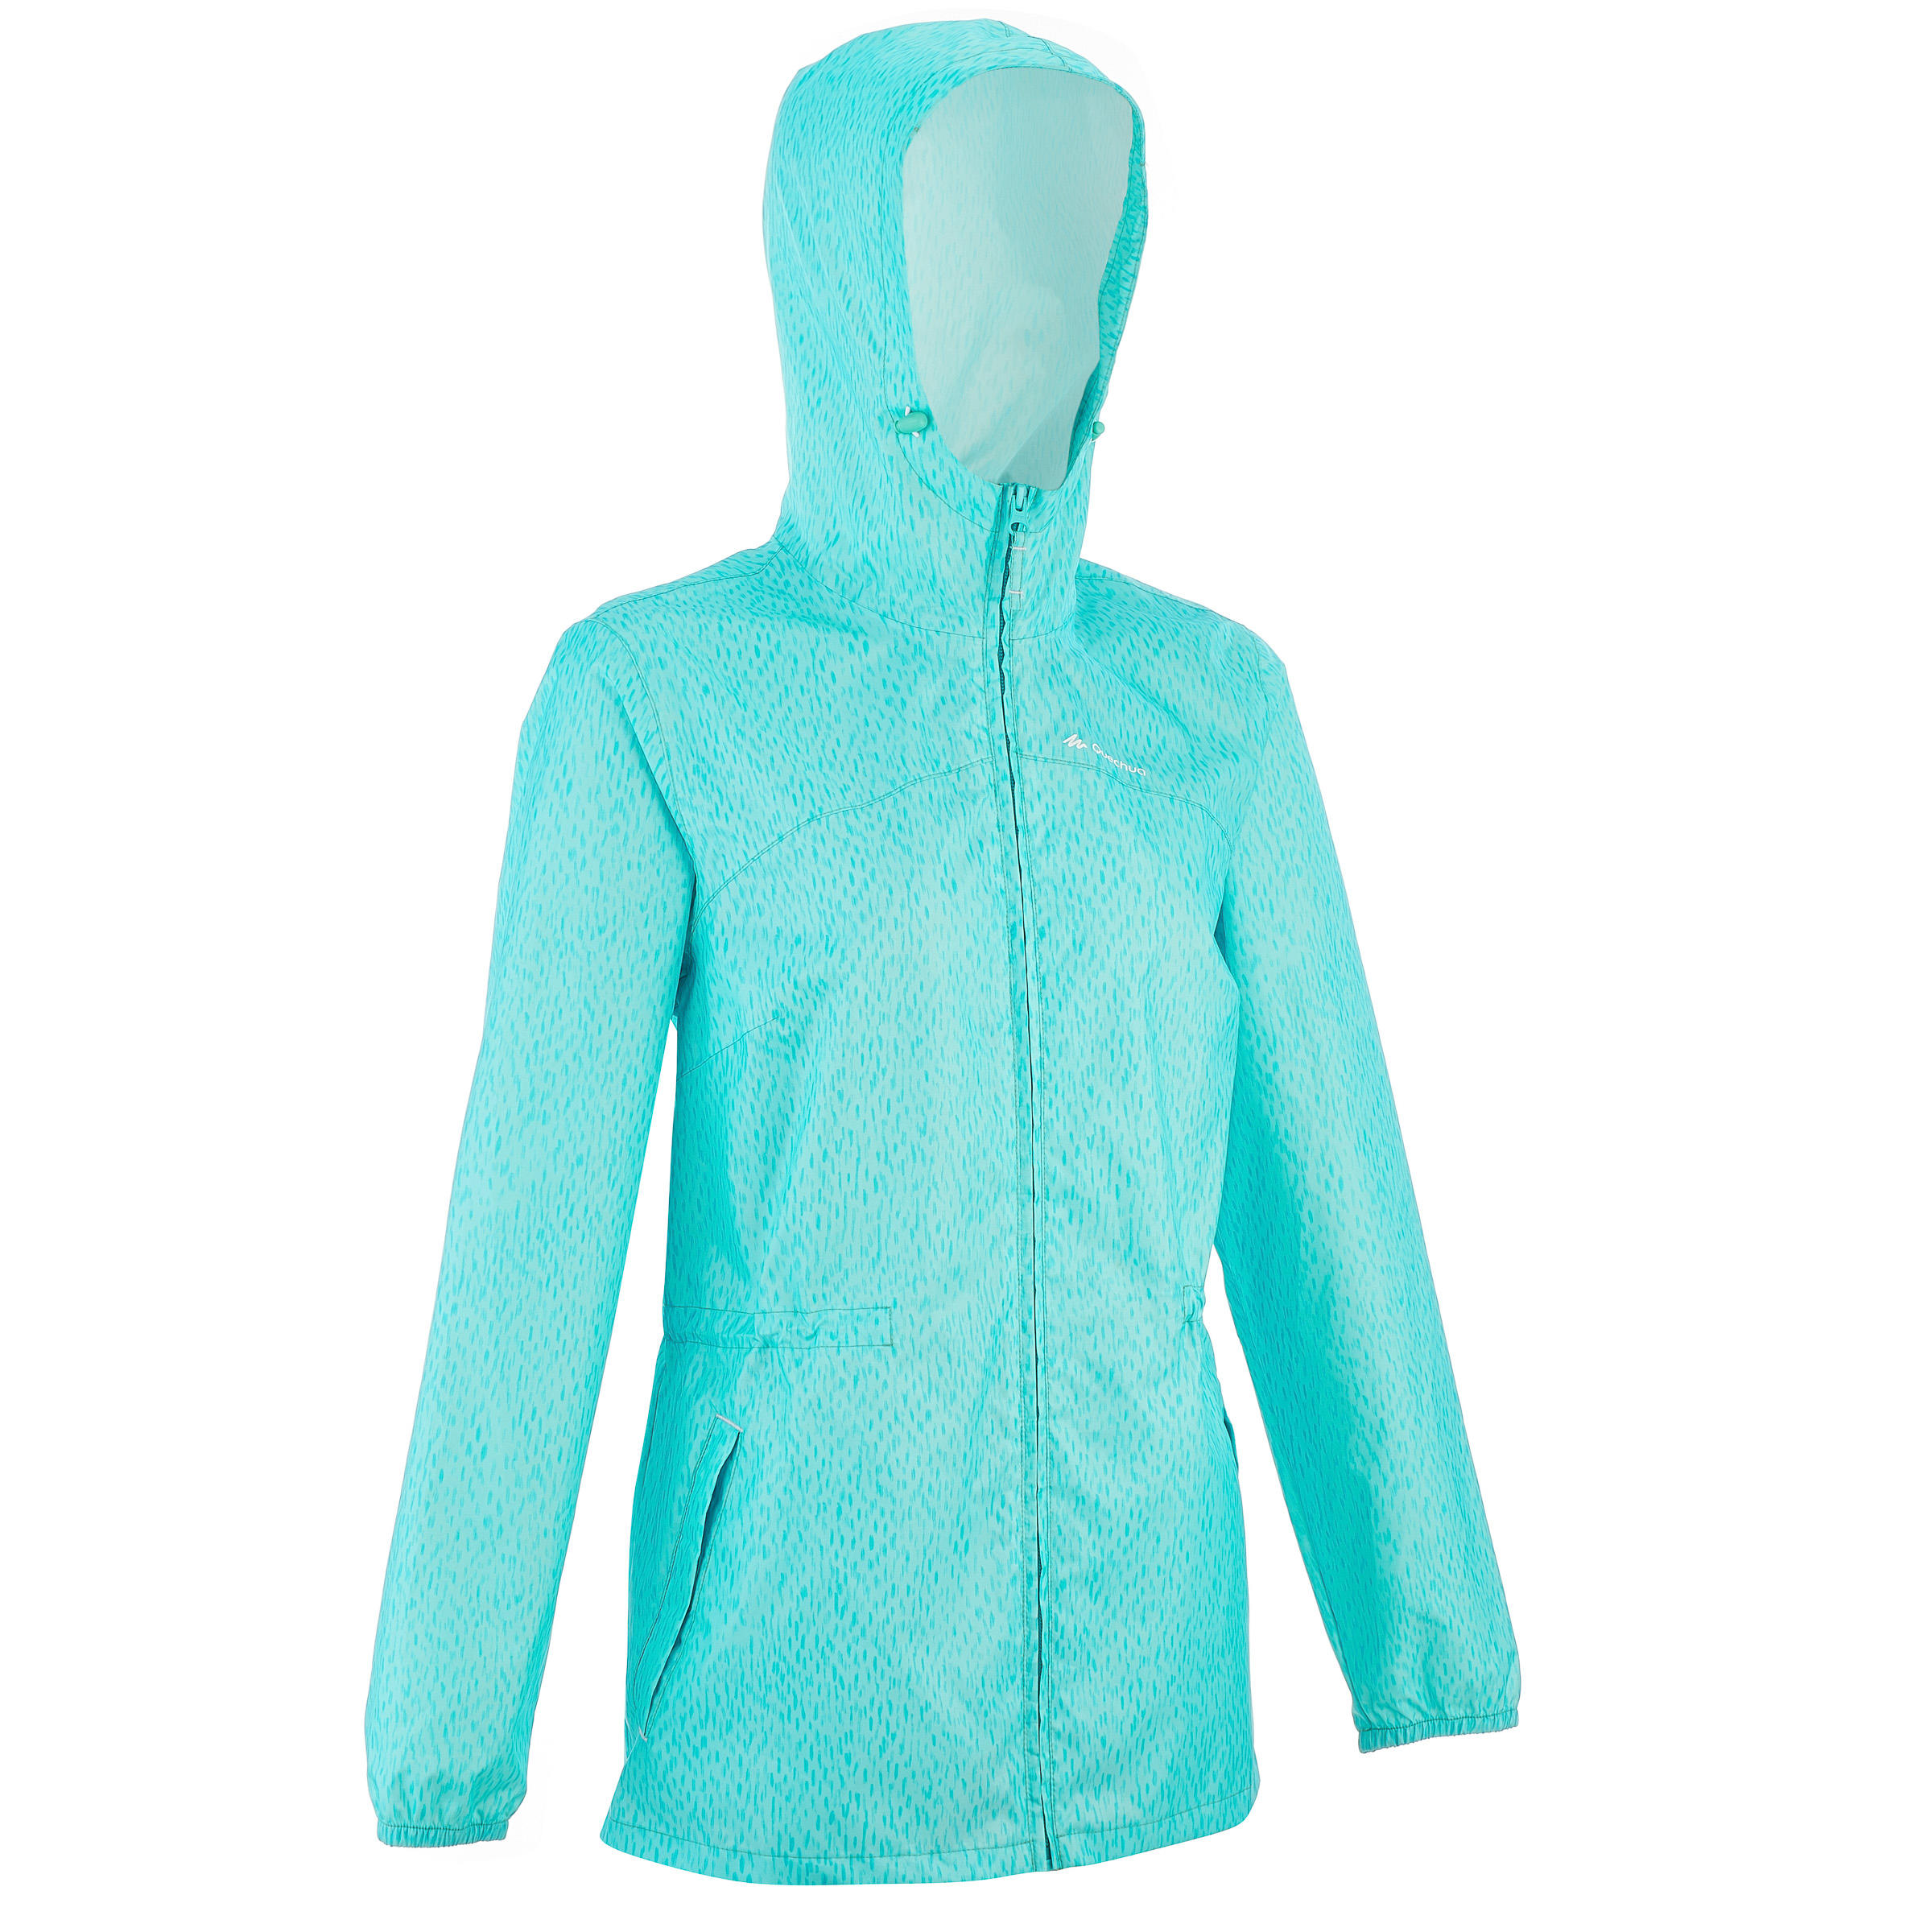 Women's Raincoat Full Zip waterproof nature hiking rain jacket – Blue